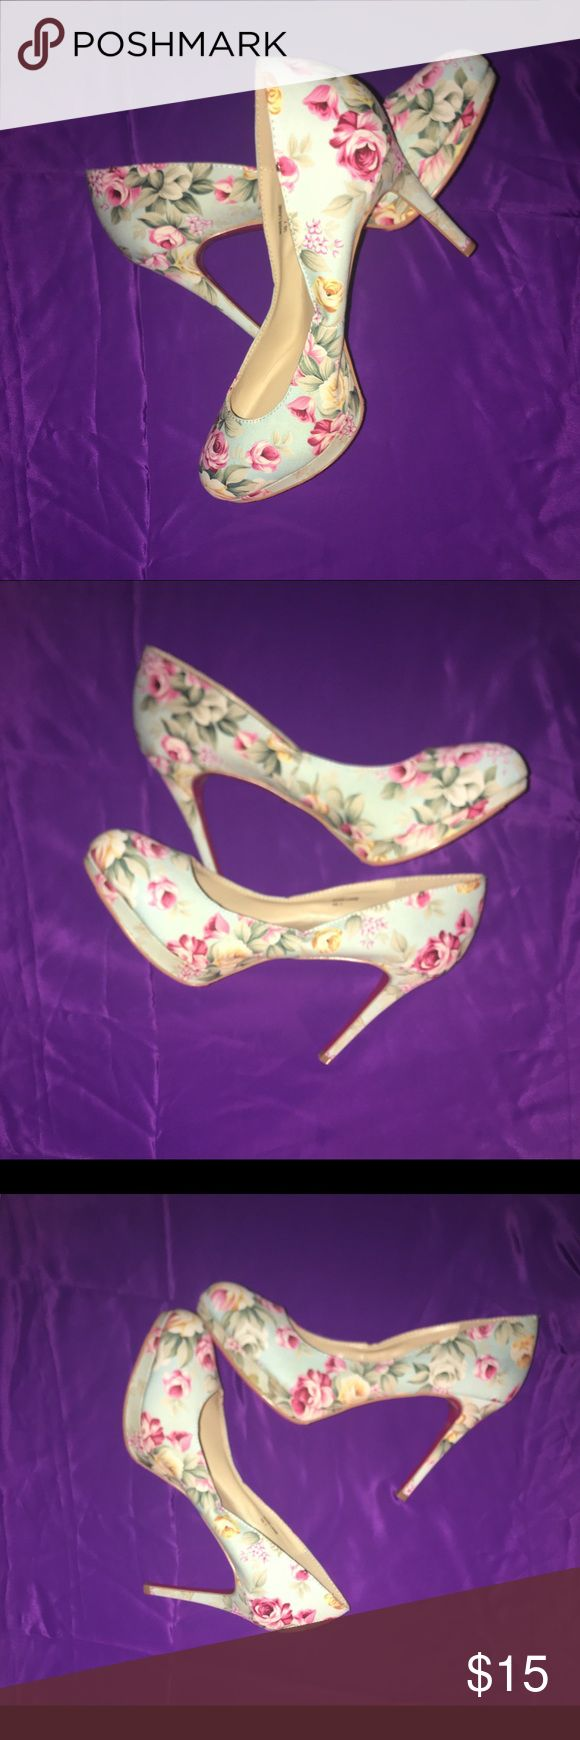 SHOE DAZZLE SIGNATURE HEELS 🌸🌸🌸🌸 Cute flower heels never worn in excellent condition cute with denim with 4 inch heel Shoe Dazzle Shoes Heels